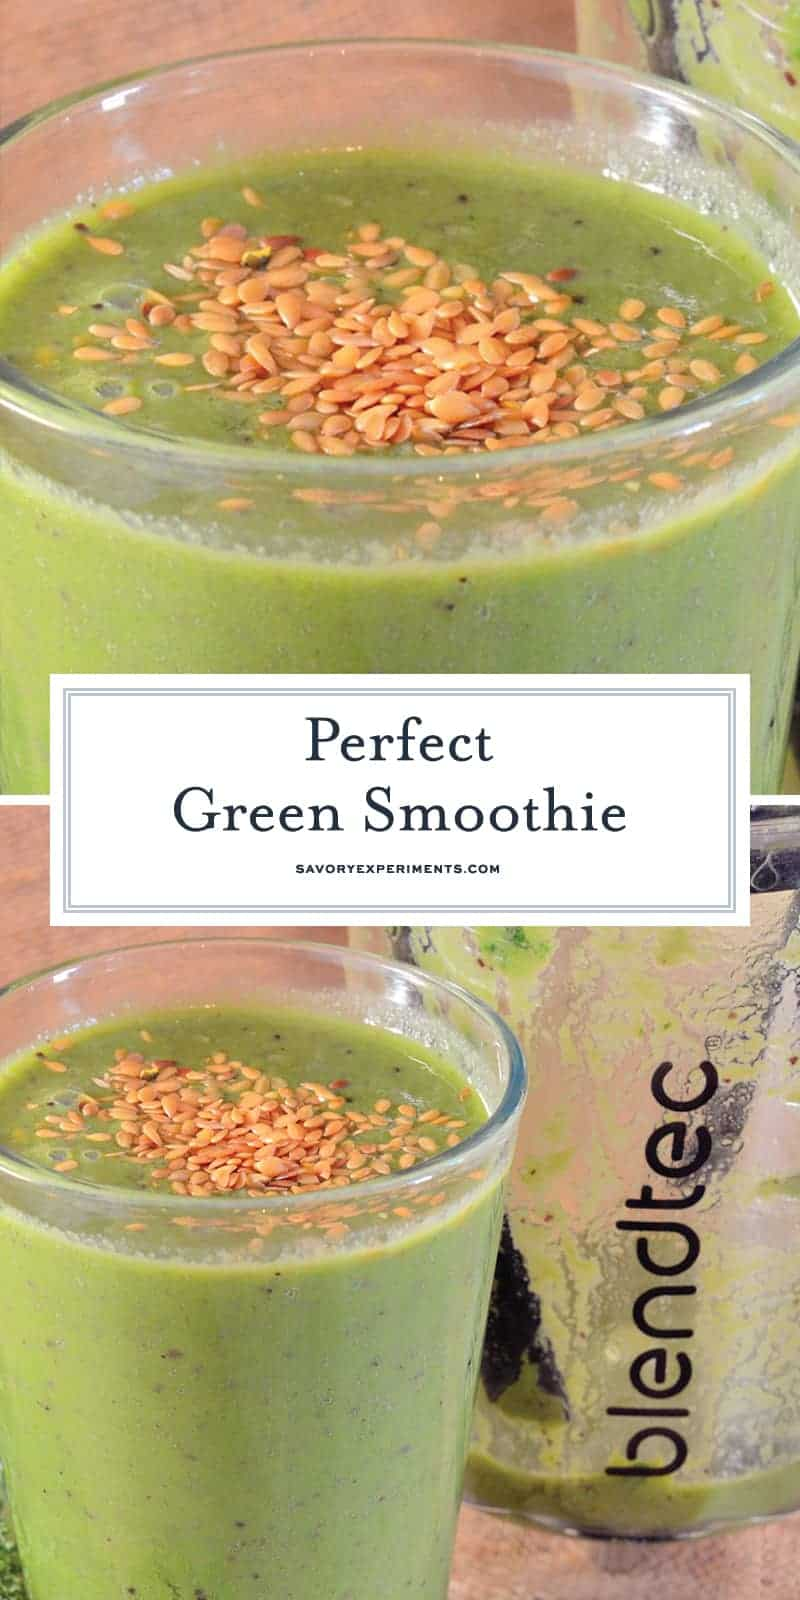 There are many ways to make a Green Smoothie, but here is the simple formula with my favorite blend!#greensmoothie #smoothierecipes www.savoryexperiments.com